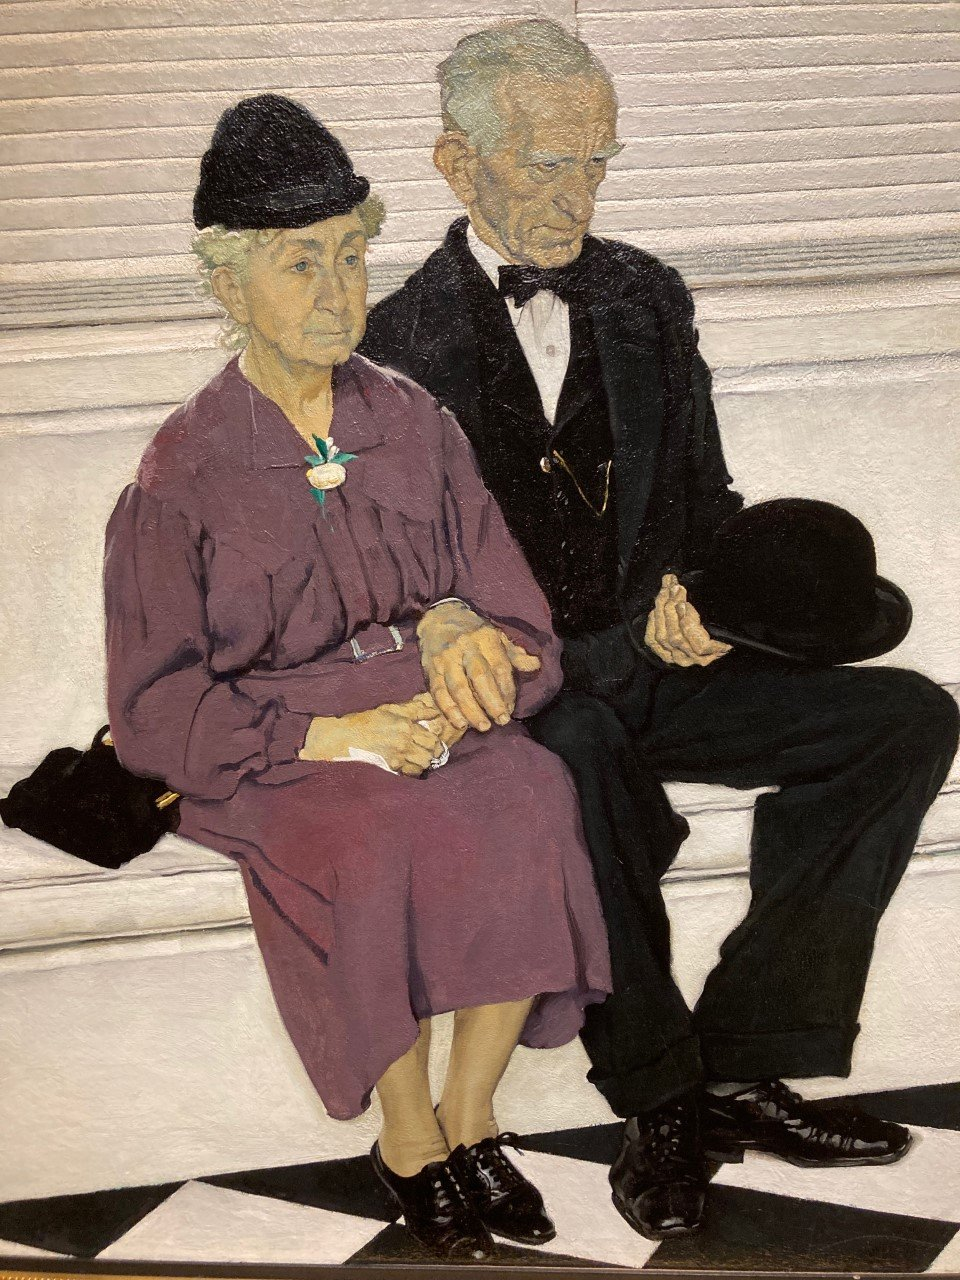 Norman Rockwell, Second Holiday, (detail) 1939. Oil on canvas. Cummer Museum of Art and Gardens.